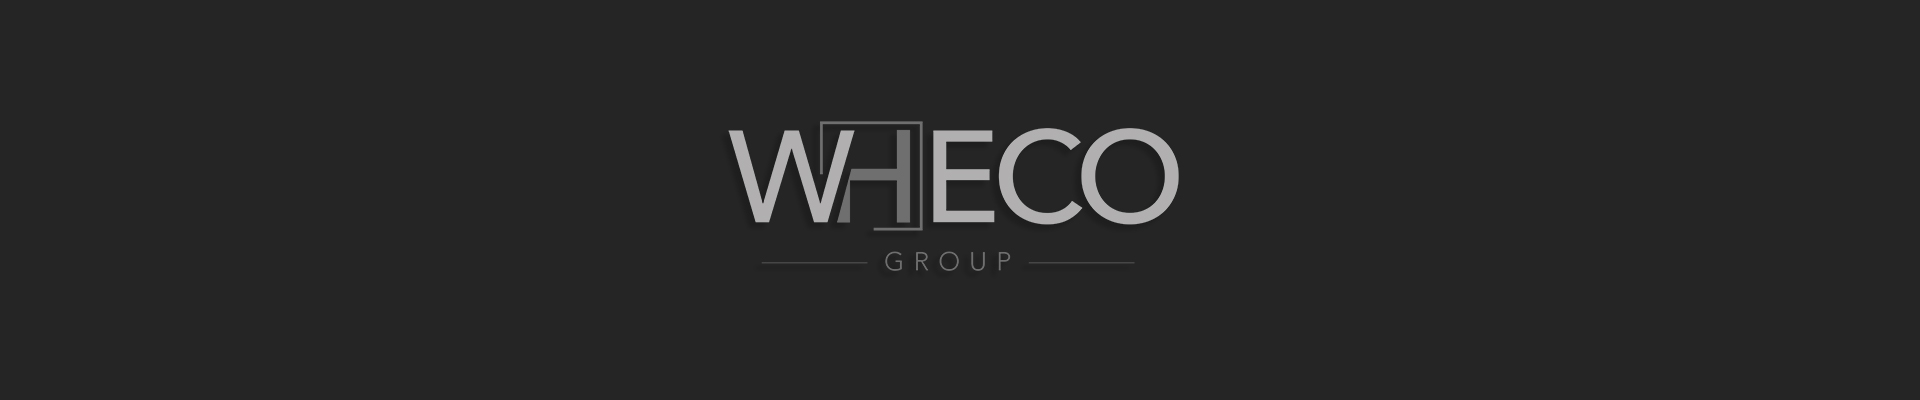 Wheco Group